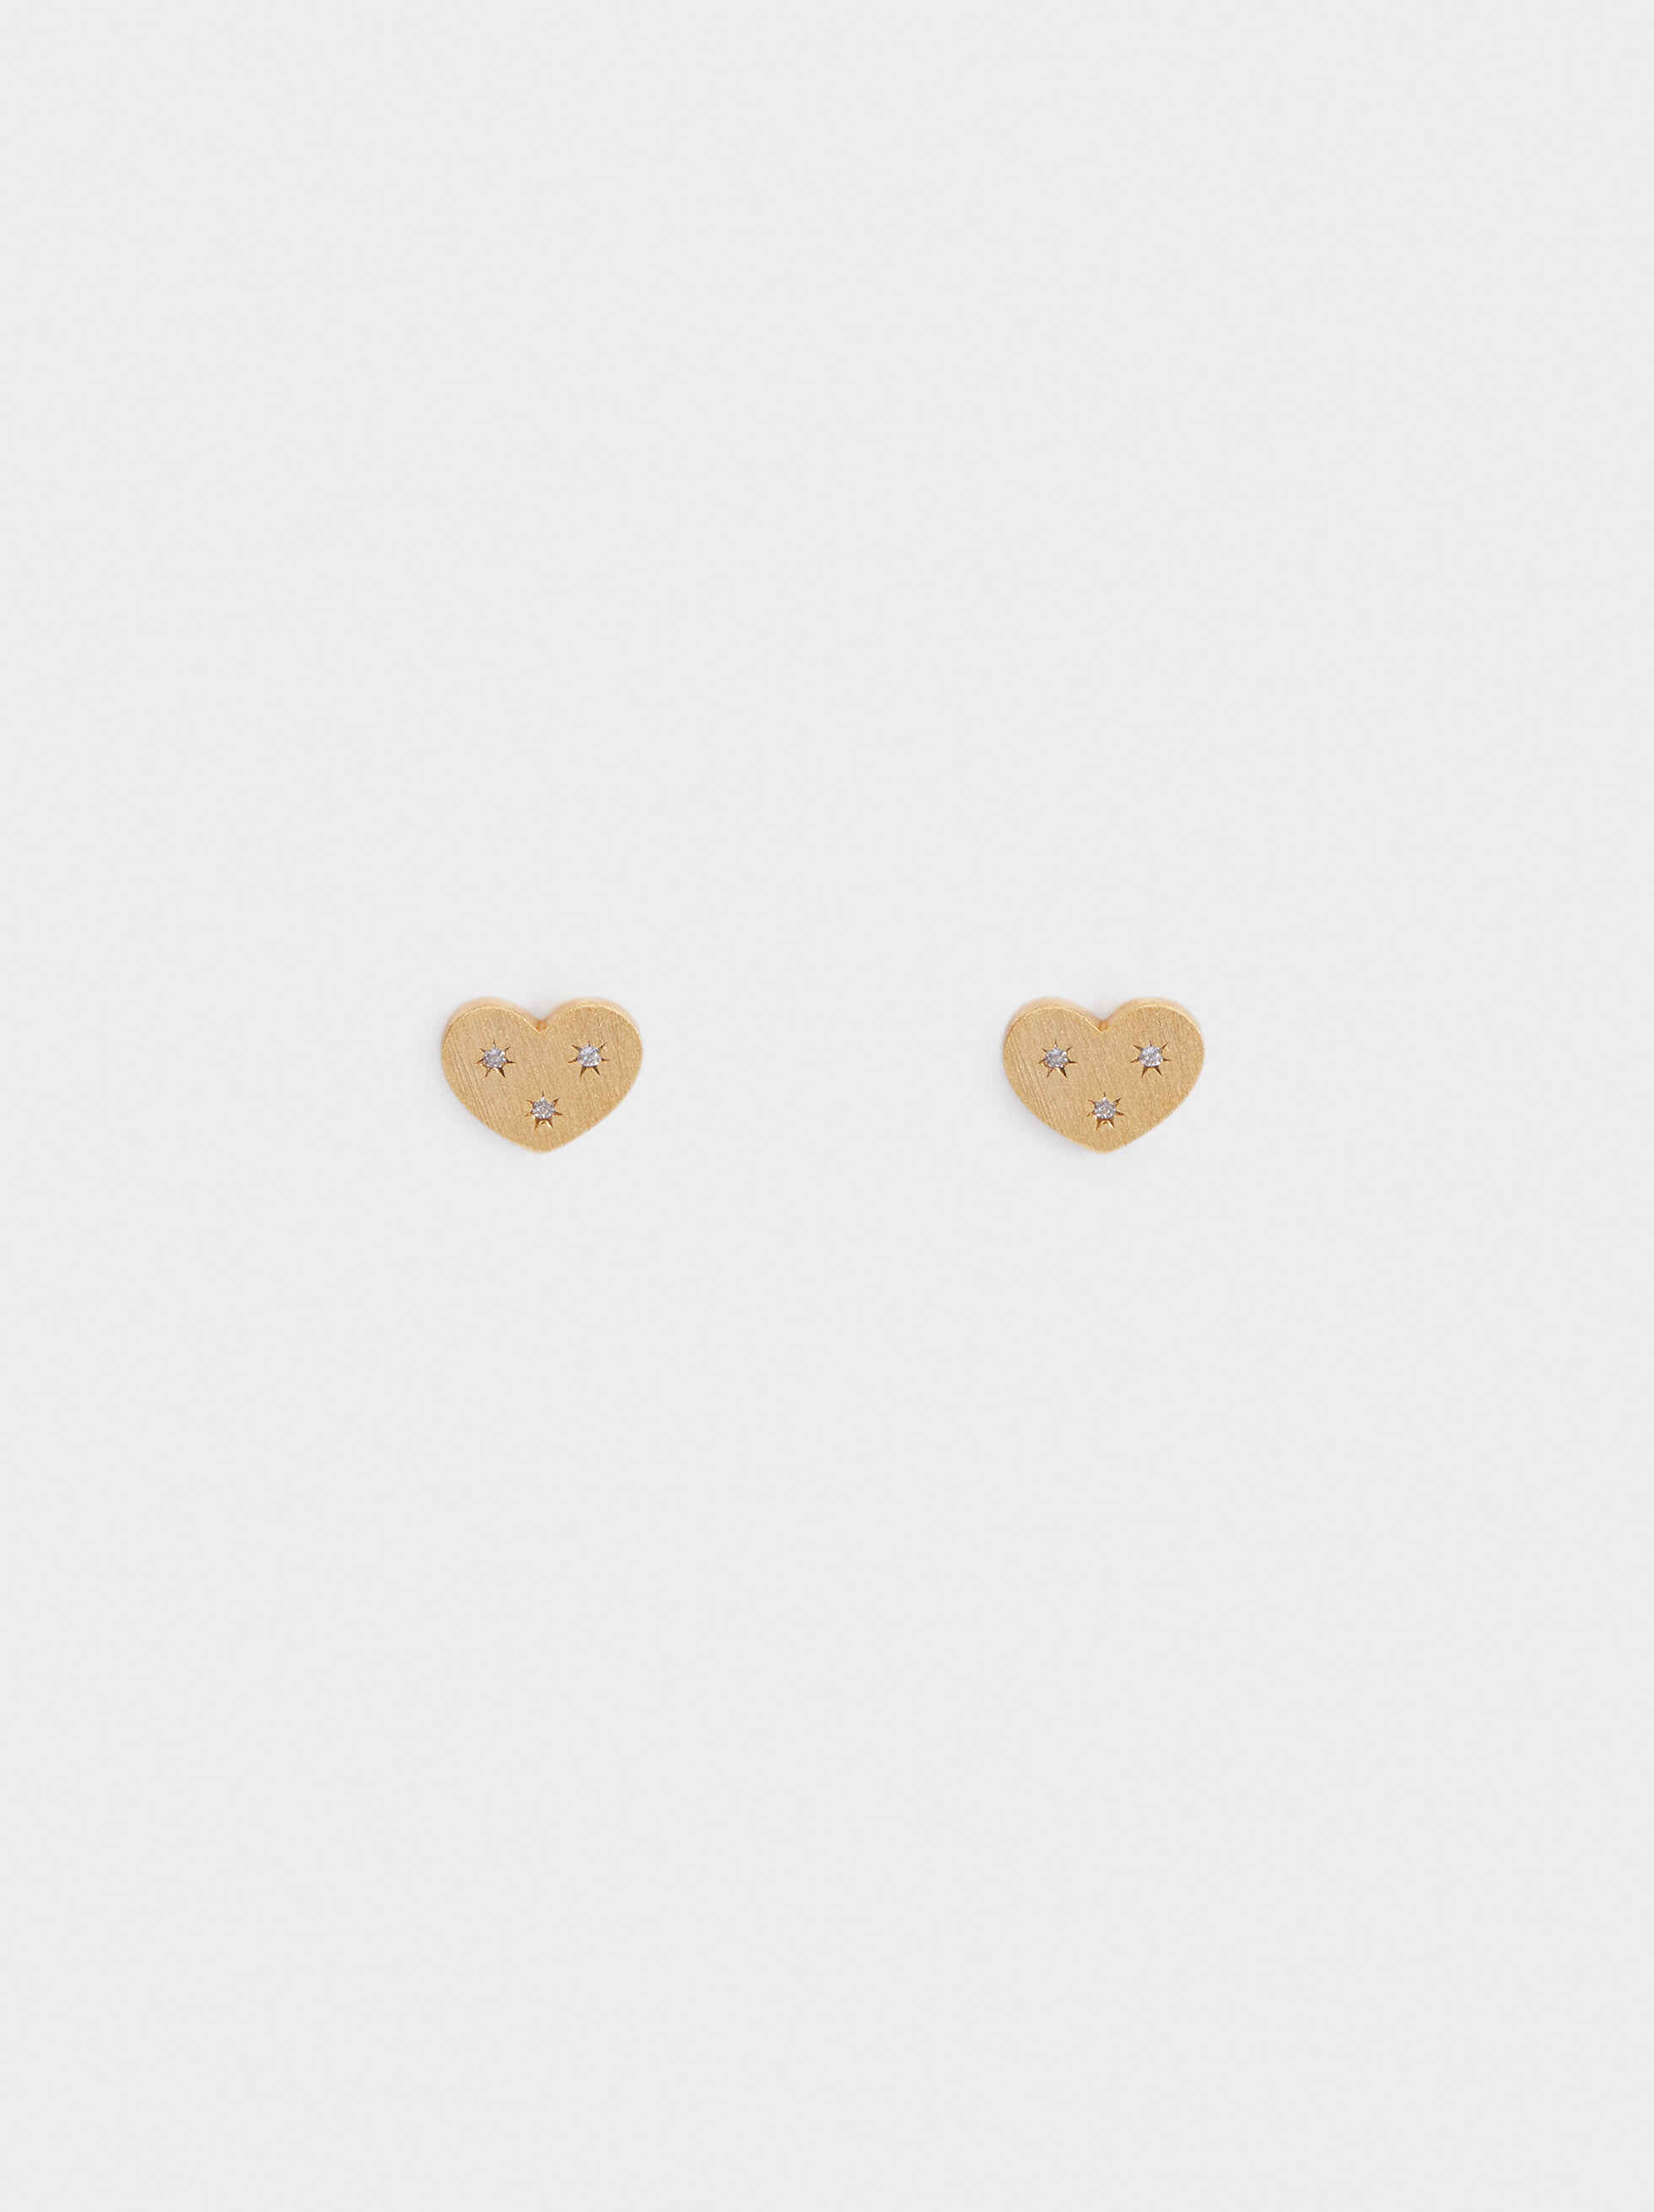 925 Silver Heart Stud Earrings, , hi-res